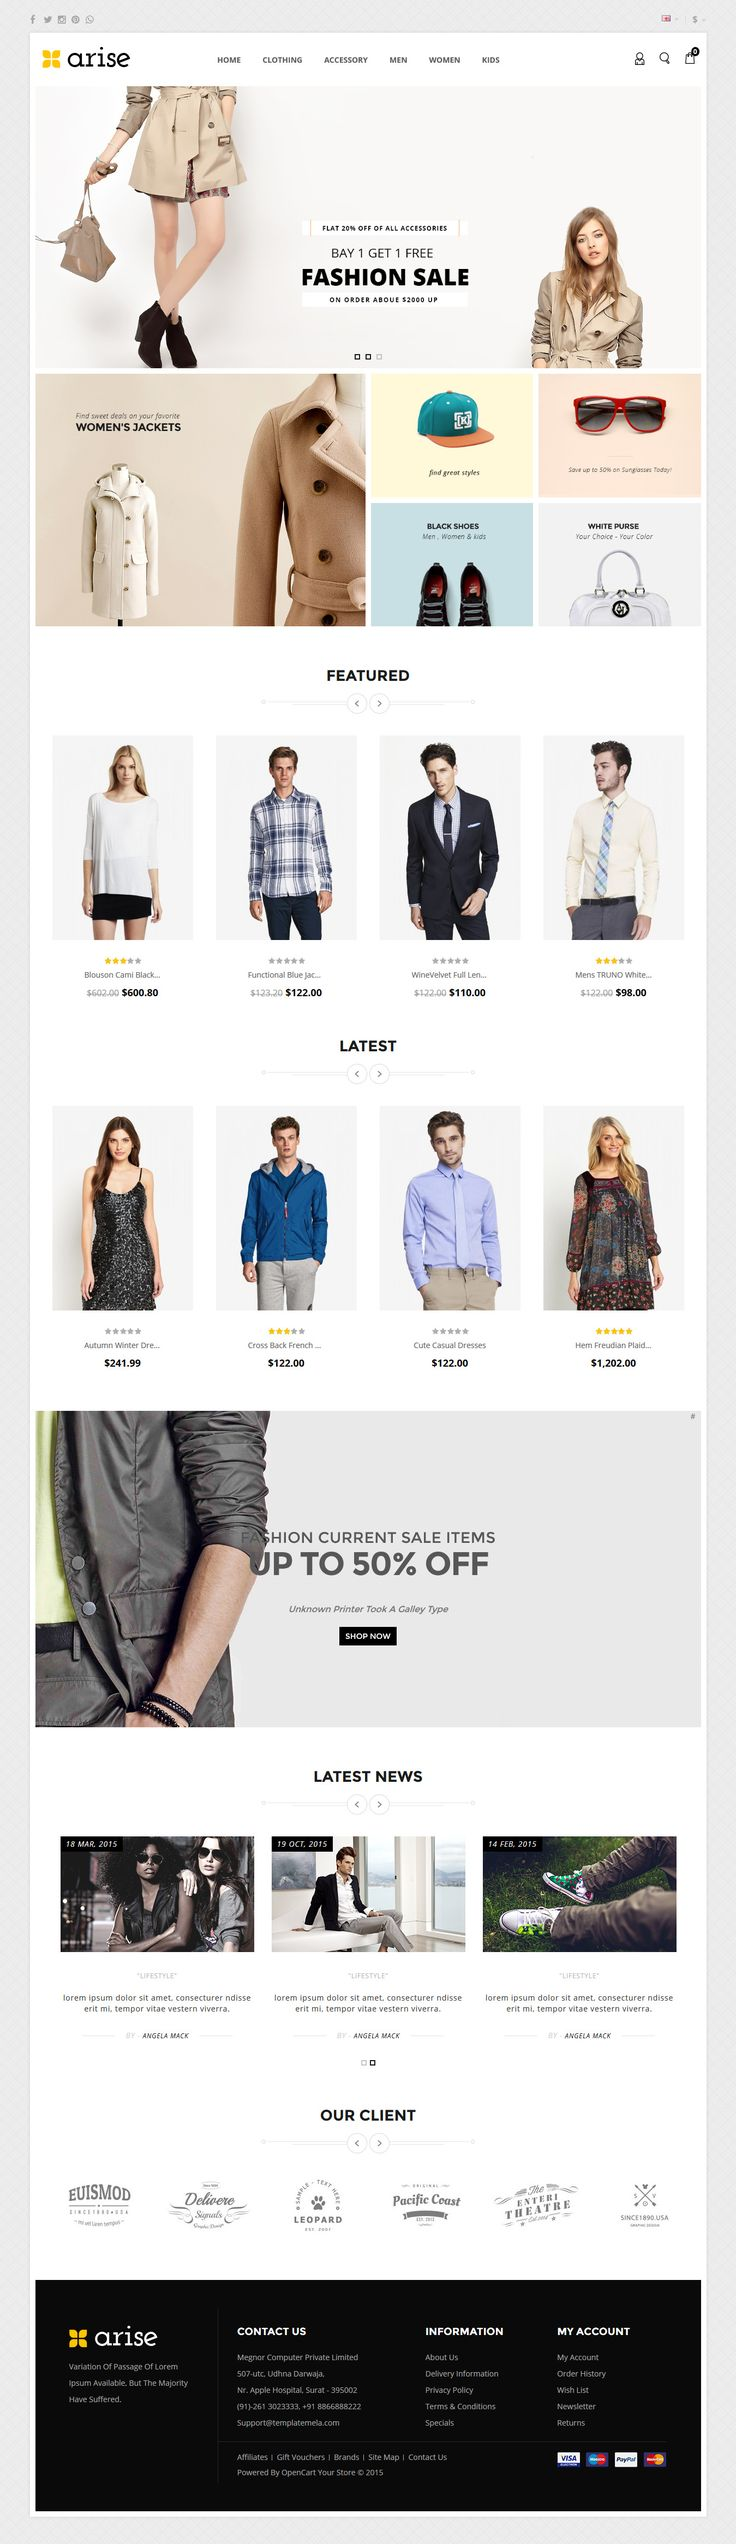 Arise - Opencart Responsive Theme Layout 2 #ecommerce #website Download: http://themeforest.net/item/arise-opencart-responsive-theme/12626539?ref=ksioks